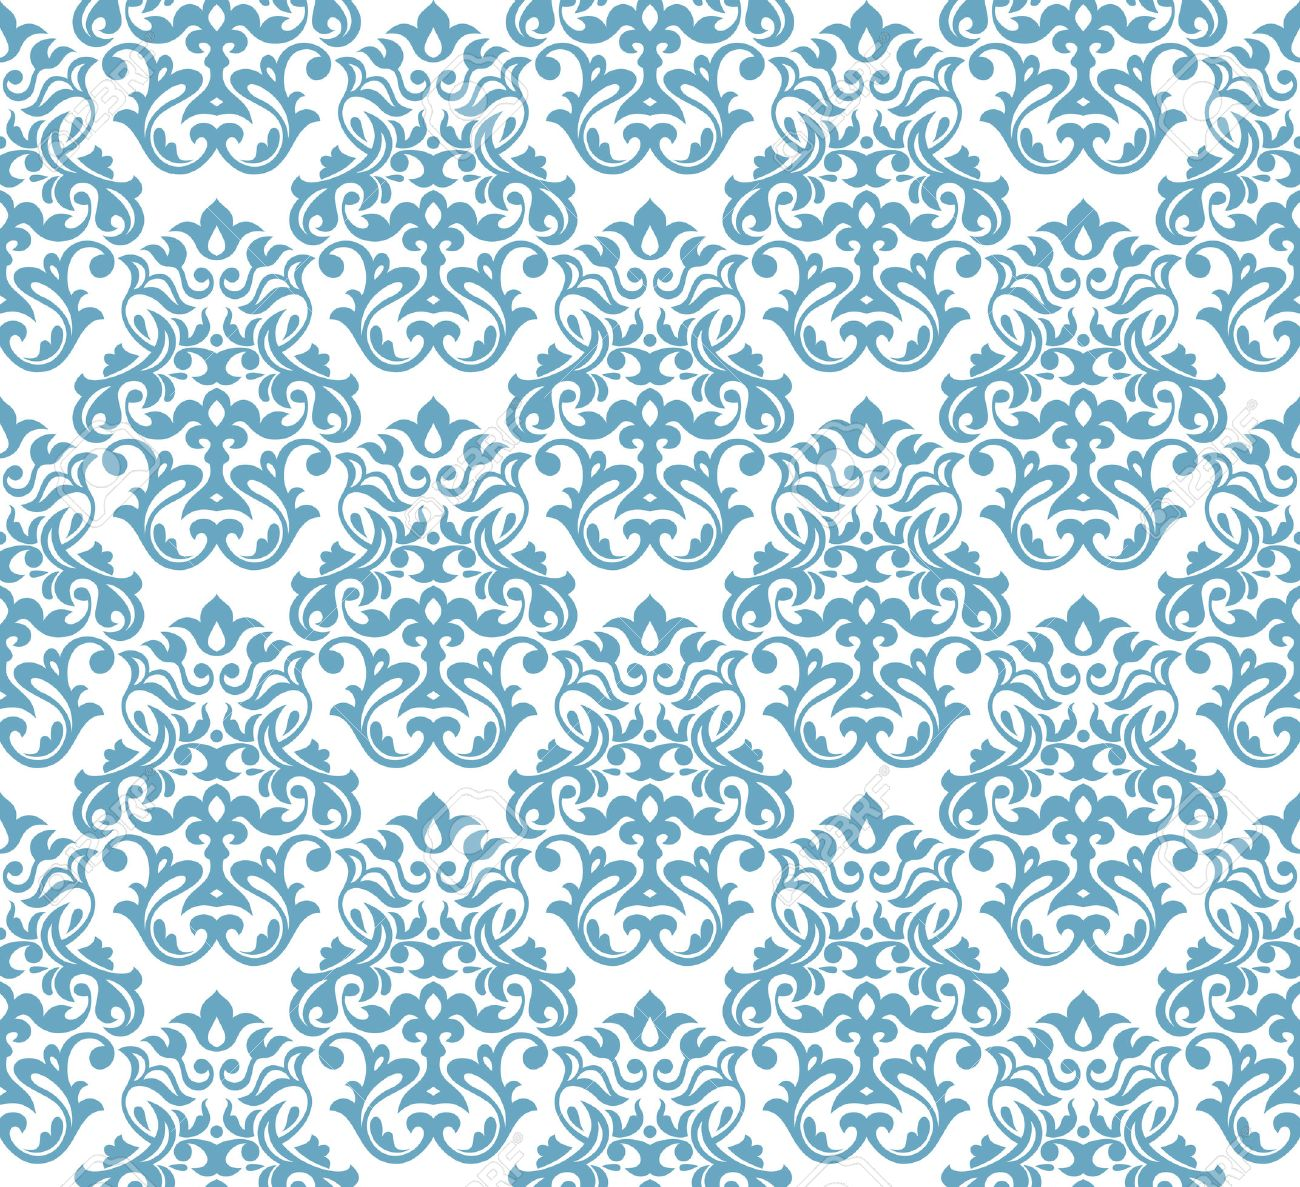 abstract seamless damask background wallpaper vector illustration Stock Vector - 8883155